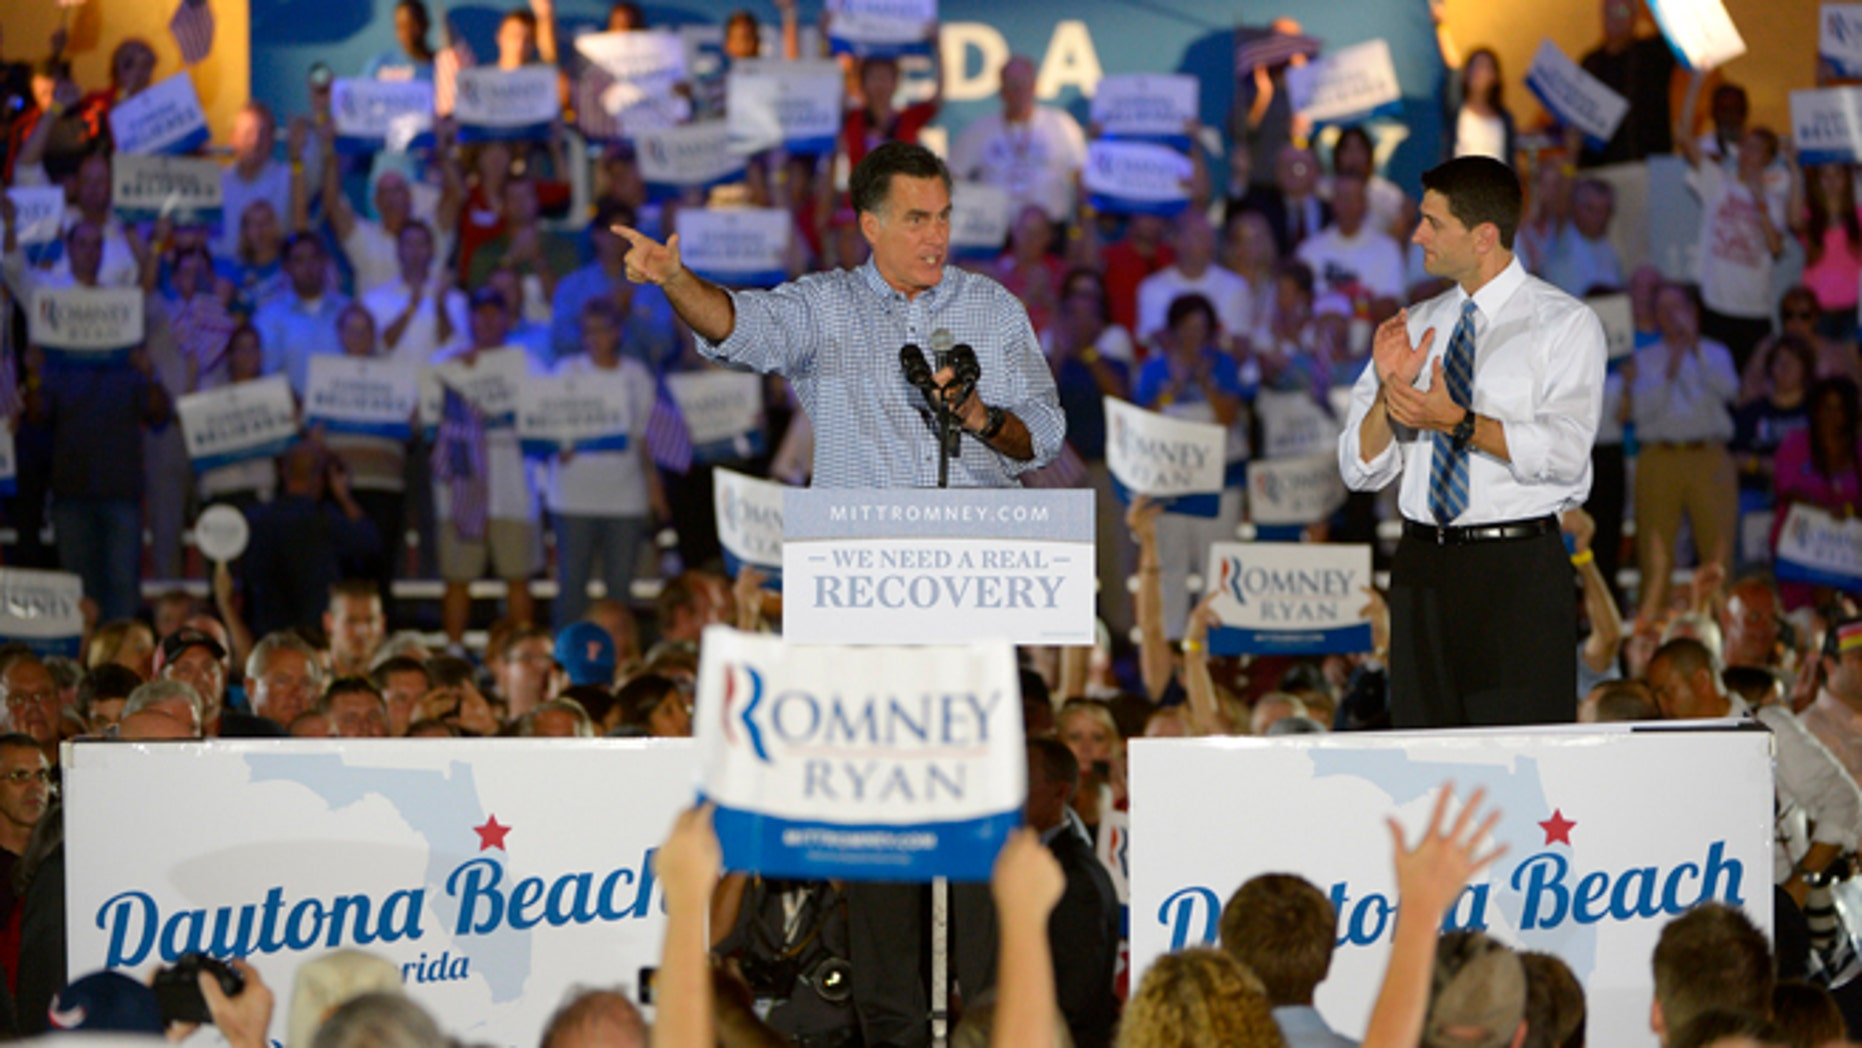 Oct. 19, 2012: Republican presidential candidate, former Massachusetts Gov. Mitt Romney, left, addresses supporters as his vice presidential running mate Rep. Paul Ryan, R-Wis., listens at the Daytona Beach Historic Bandshell during the Romney Ryan Victory Rally in Daytona Beach, Fla.